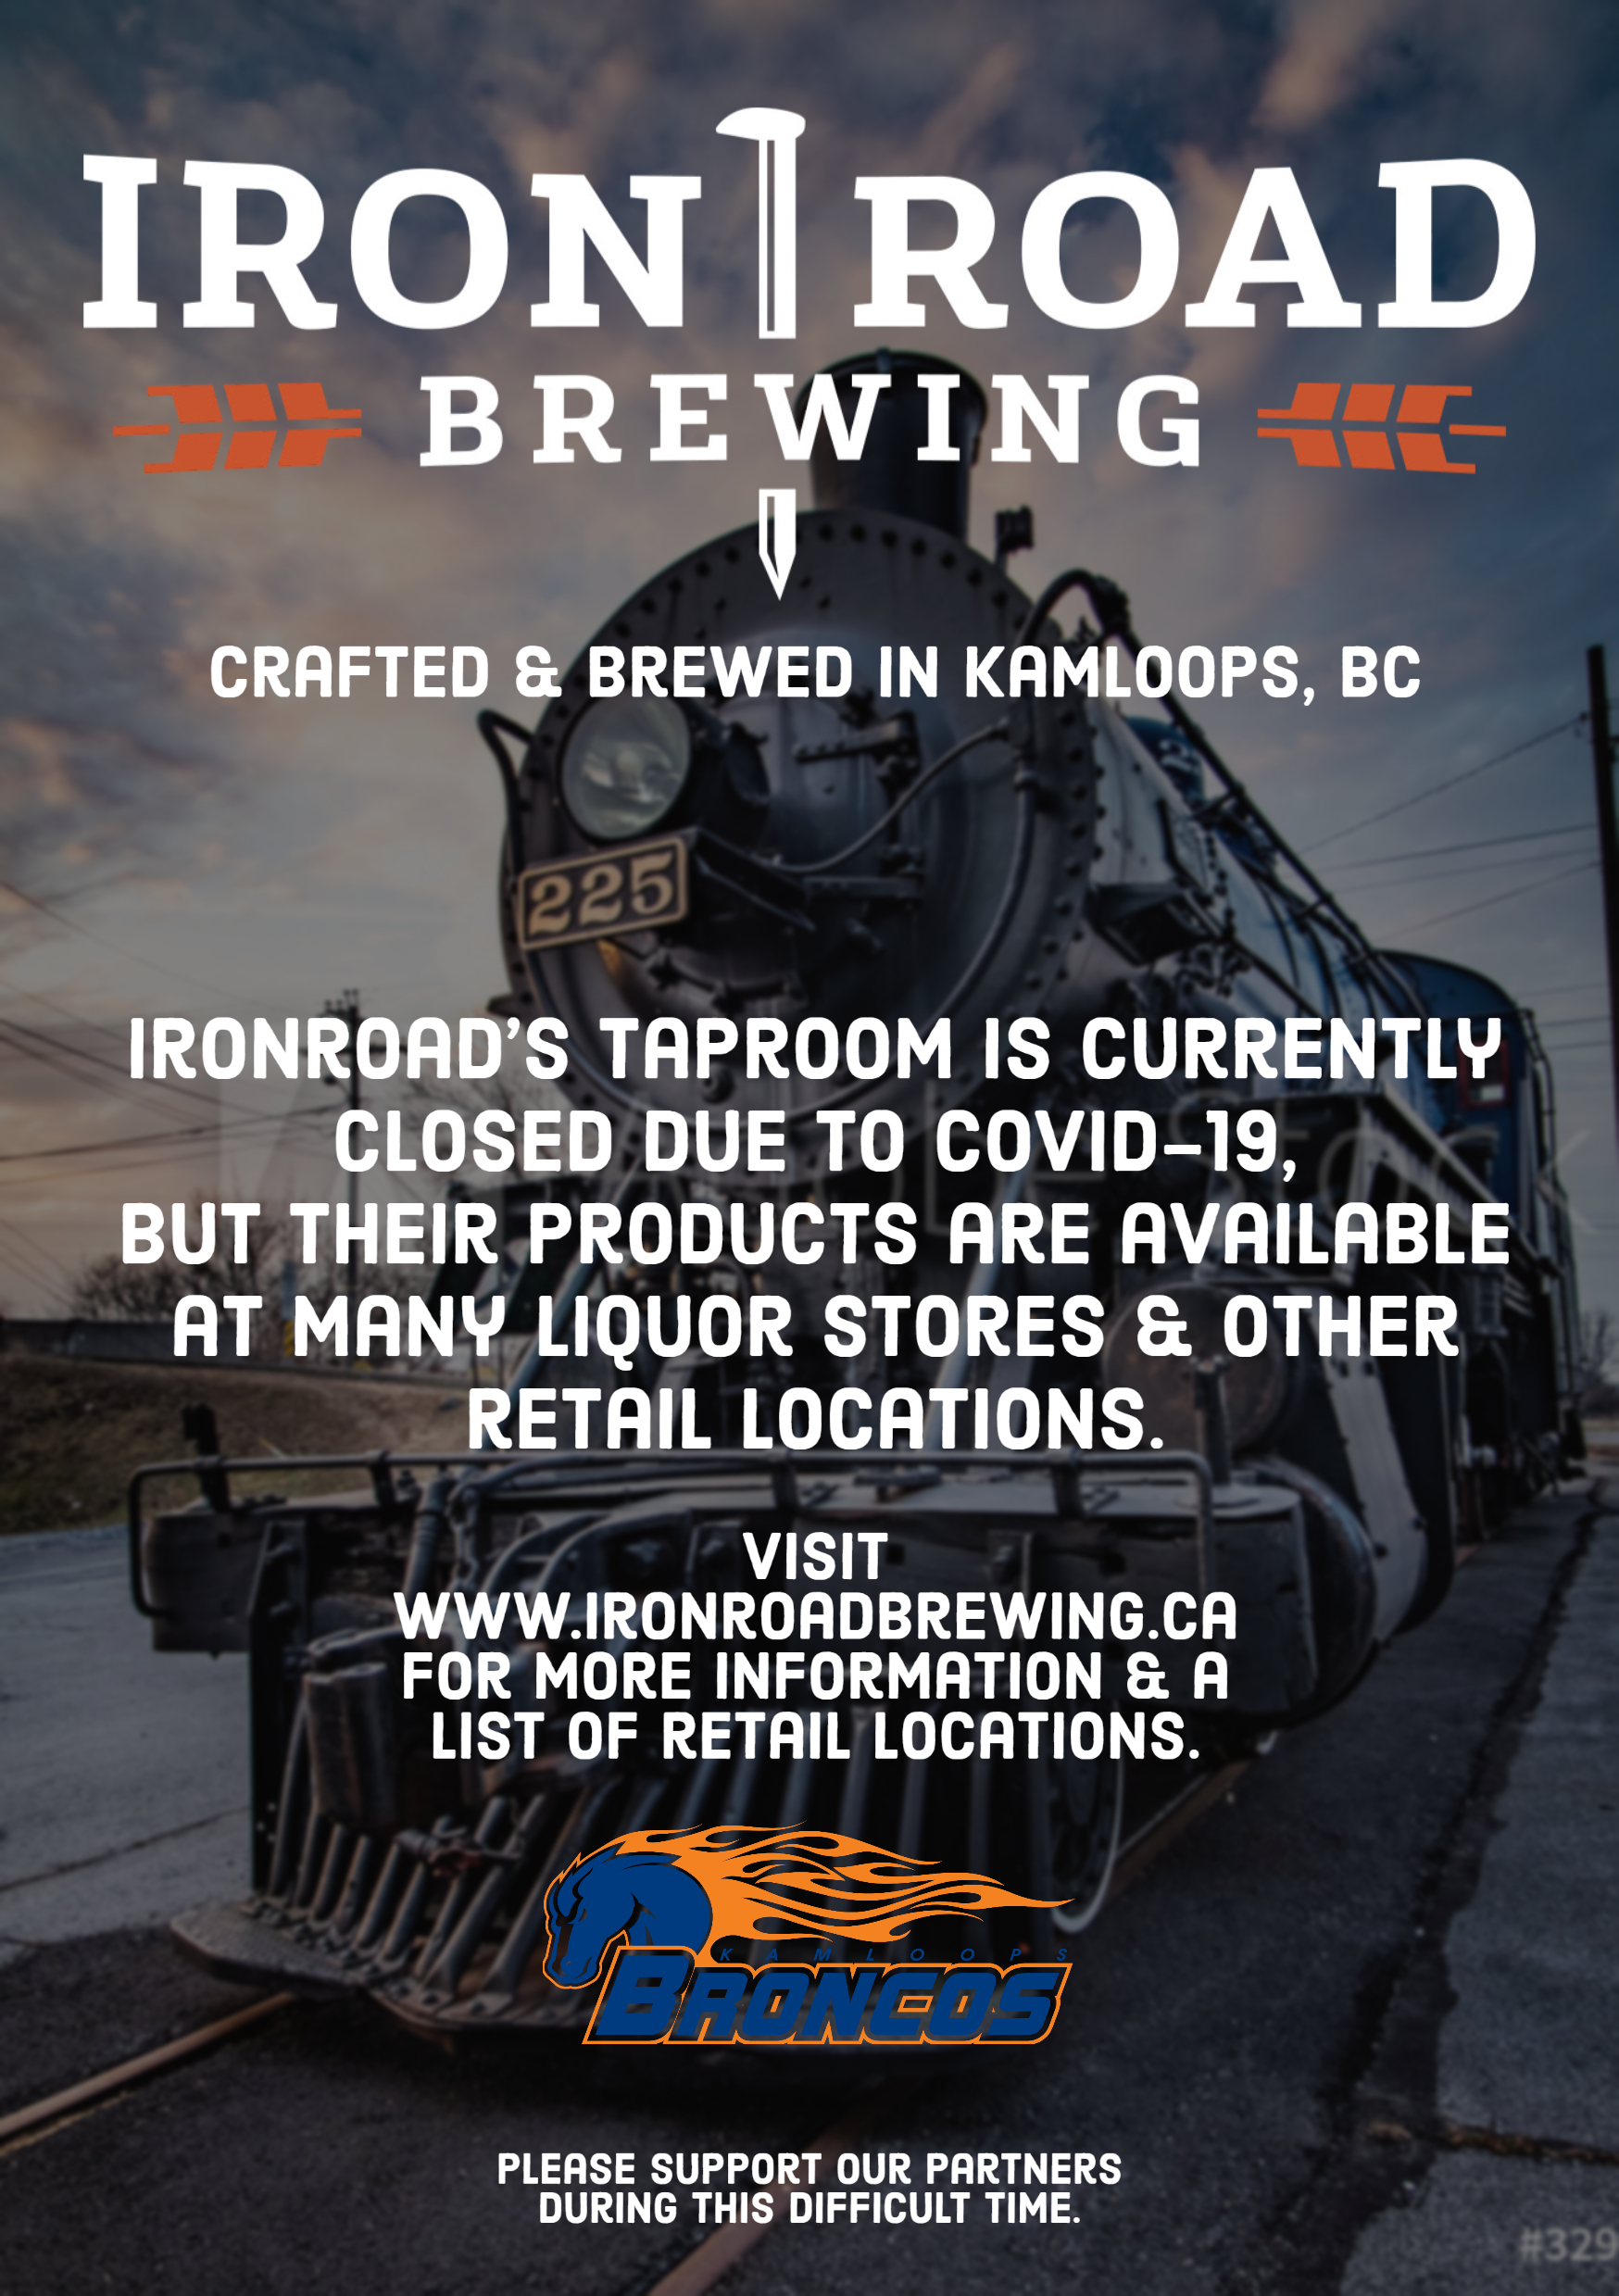 ironroad micro brewery ad